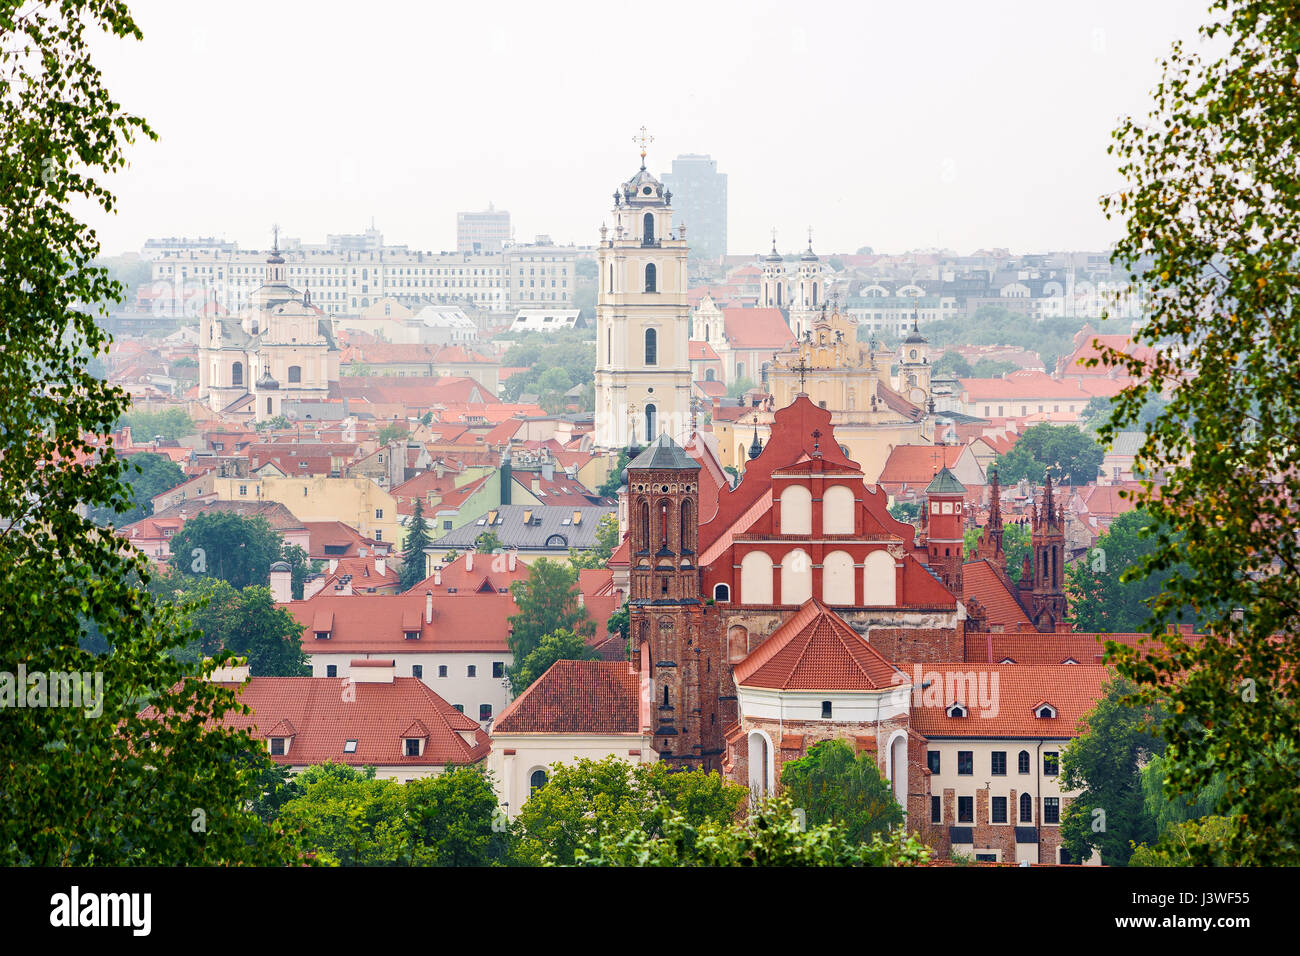 Cityscape of Vilnius (Lithuania), Church of all Saints - Stock Image